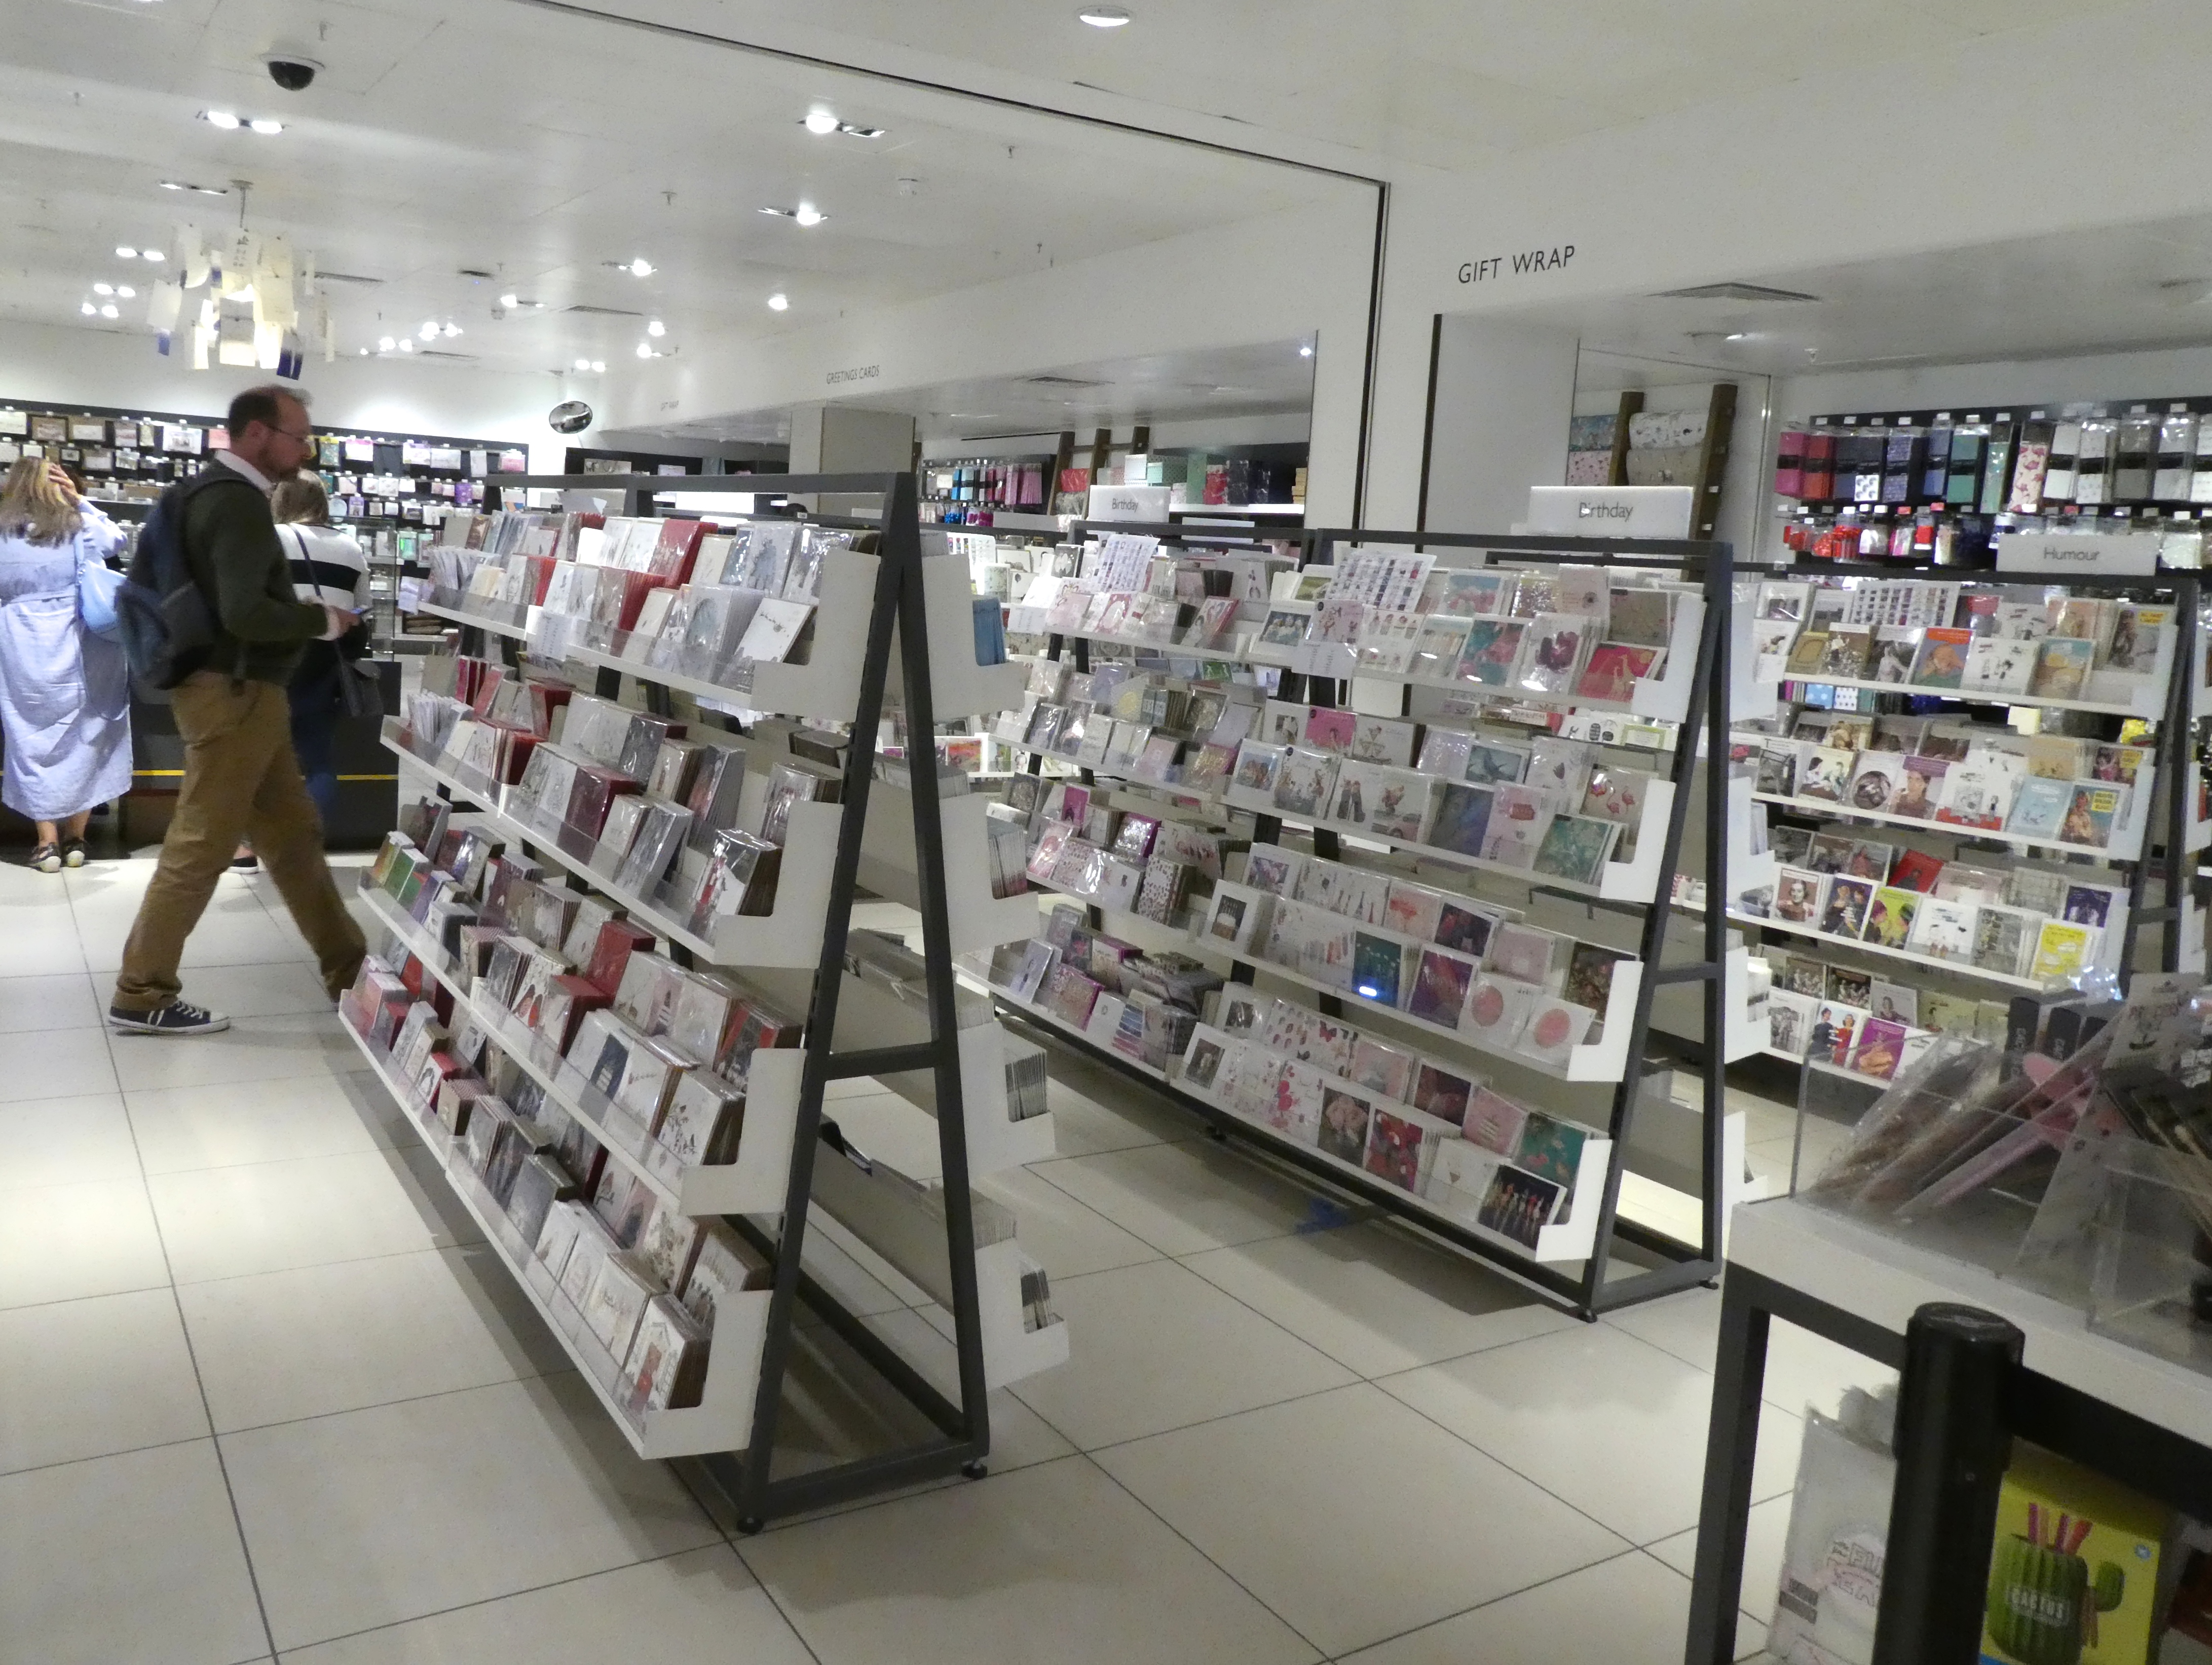 Above: The card department in John Lewis' Oxford Street store.